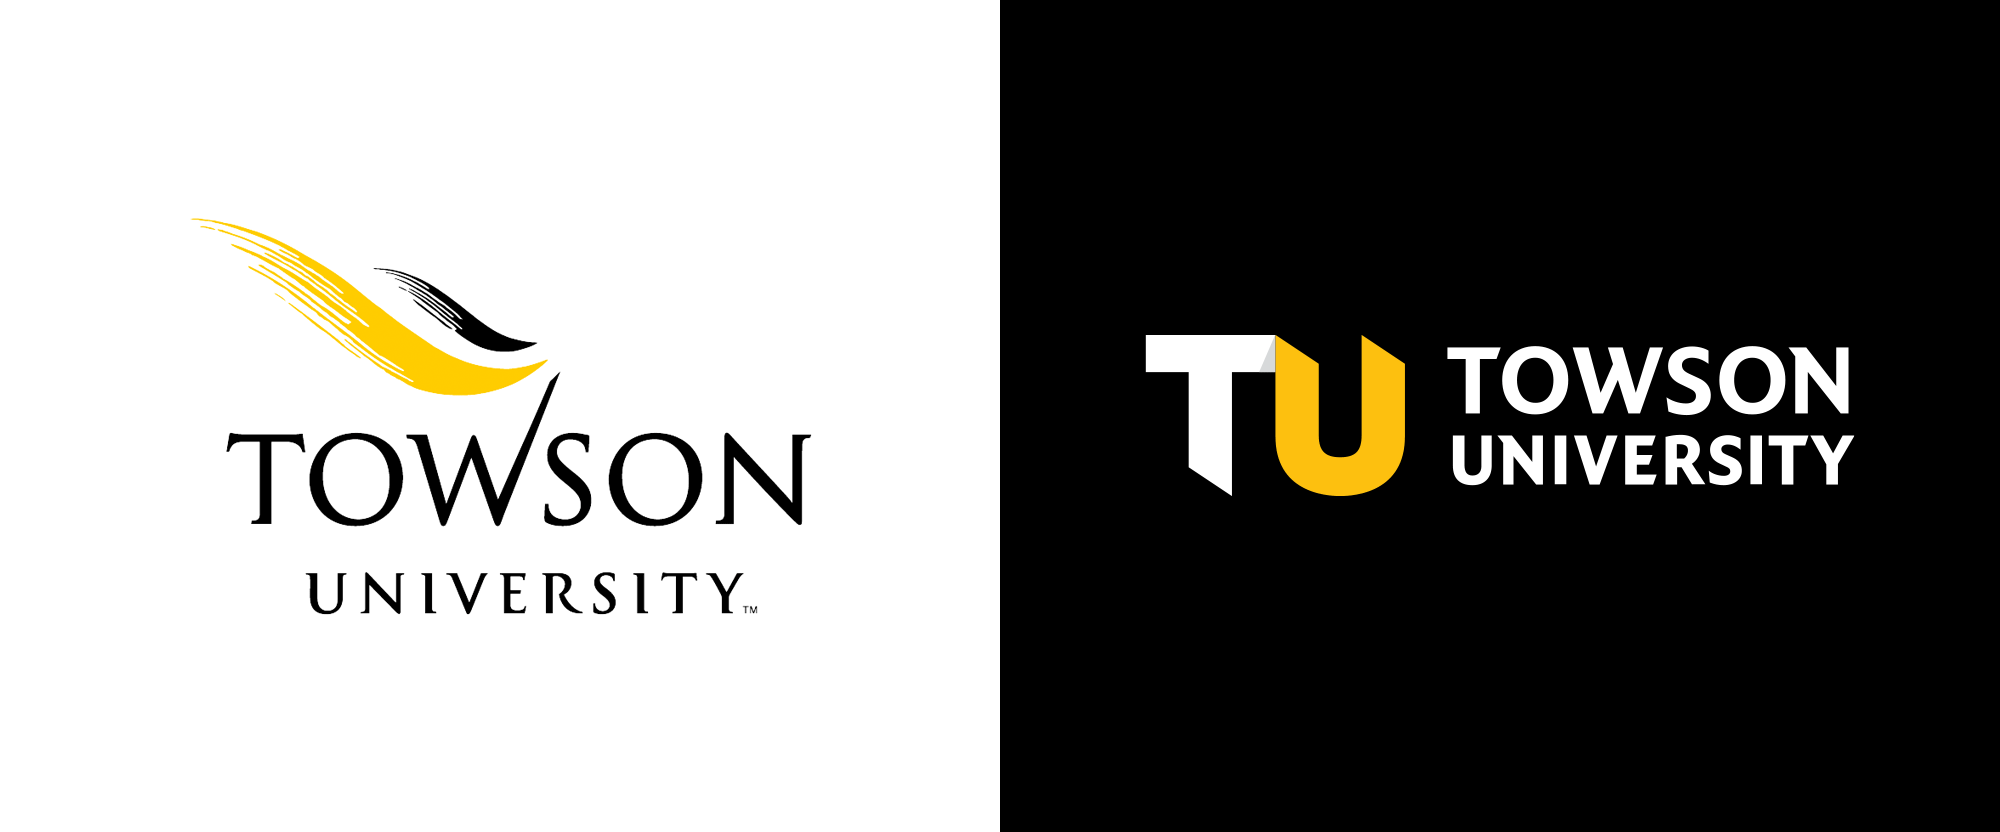 New Logo for Towson University by Mission Media